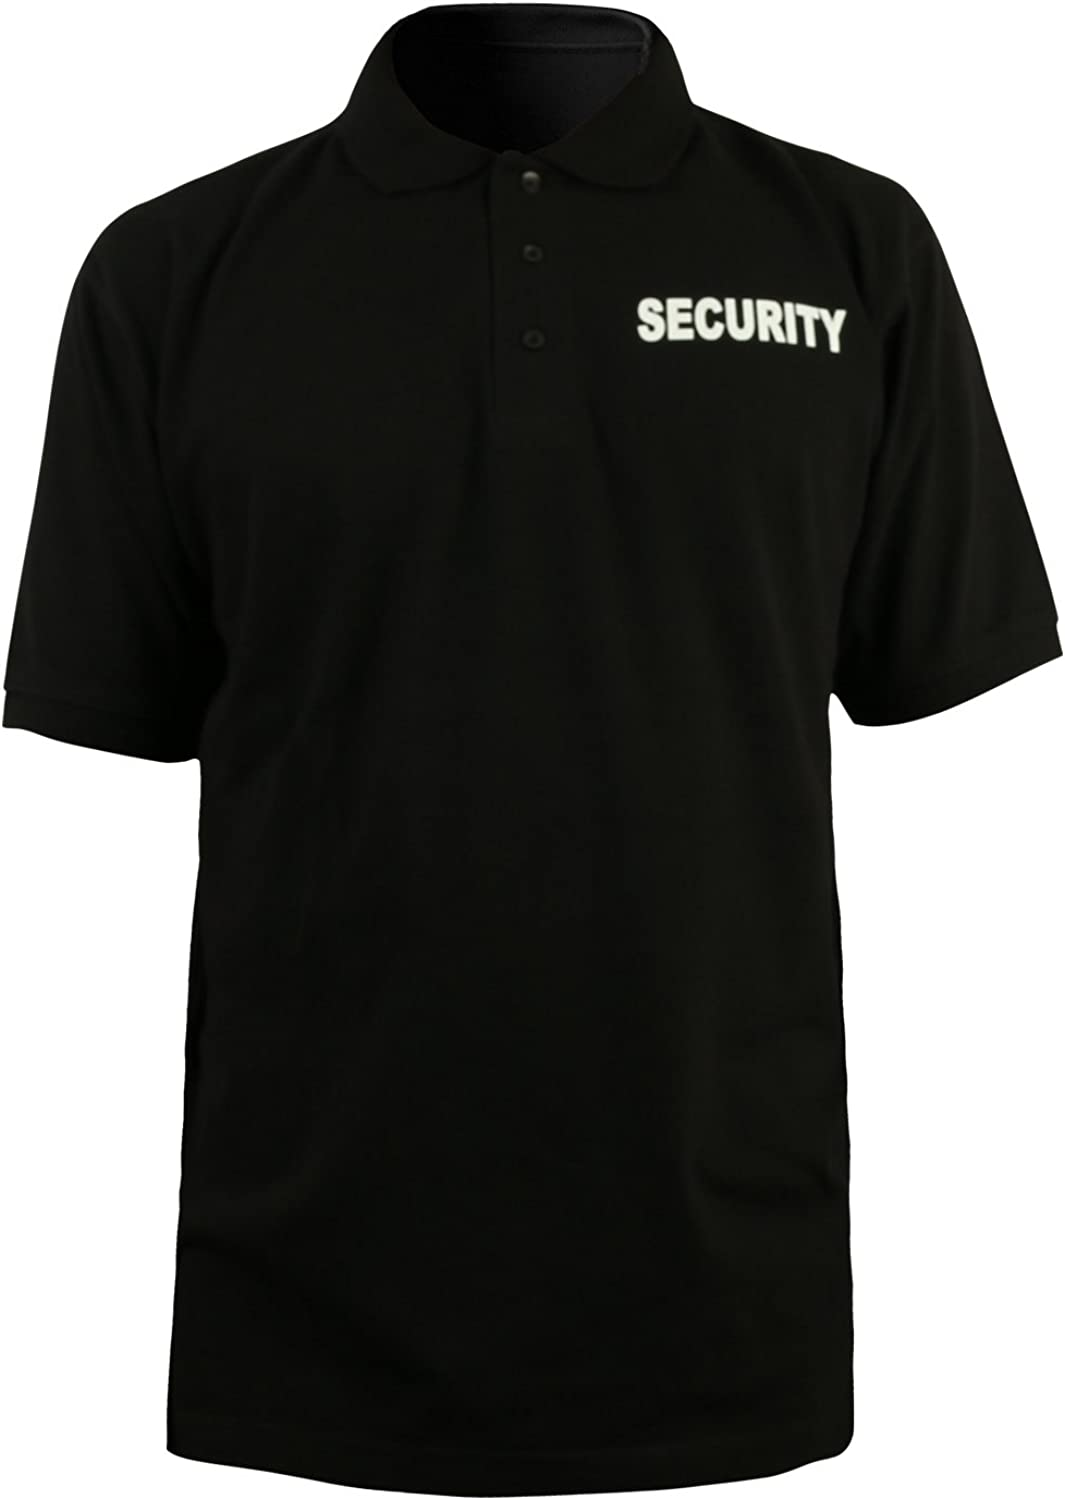 AracciUS Security | Professional Security Officer Polo Shirt